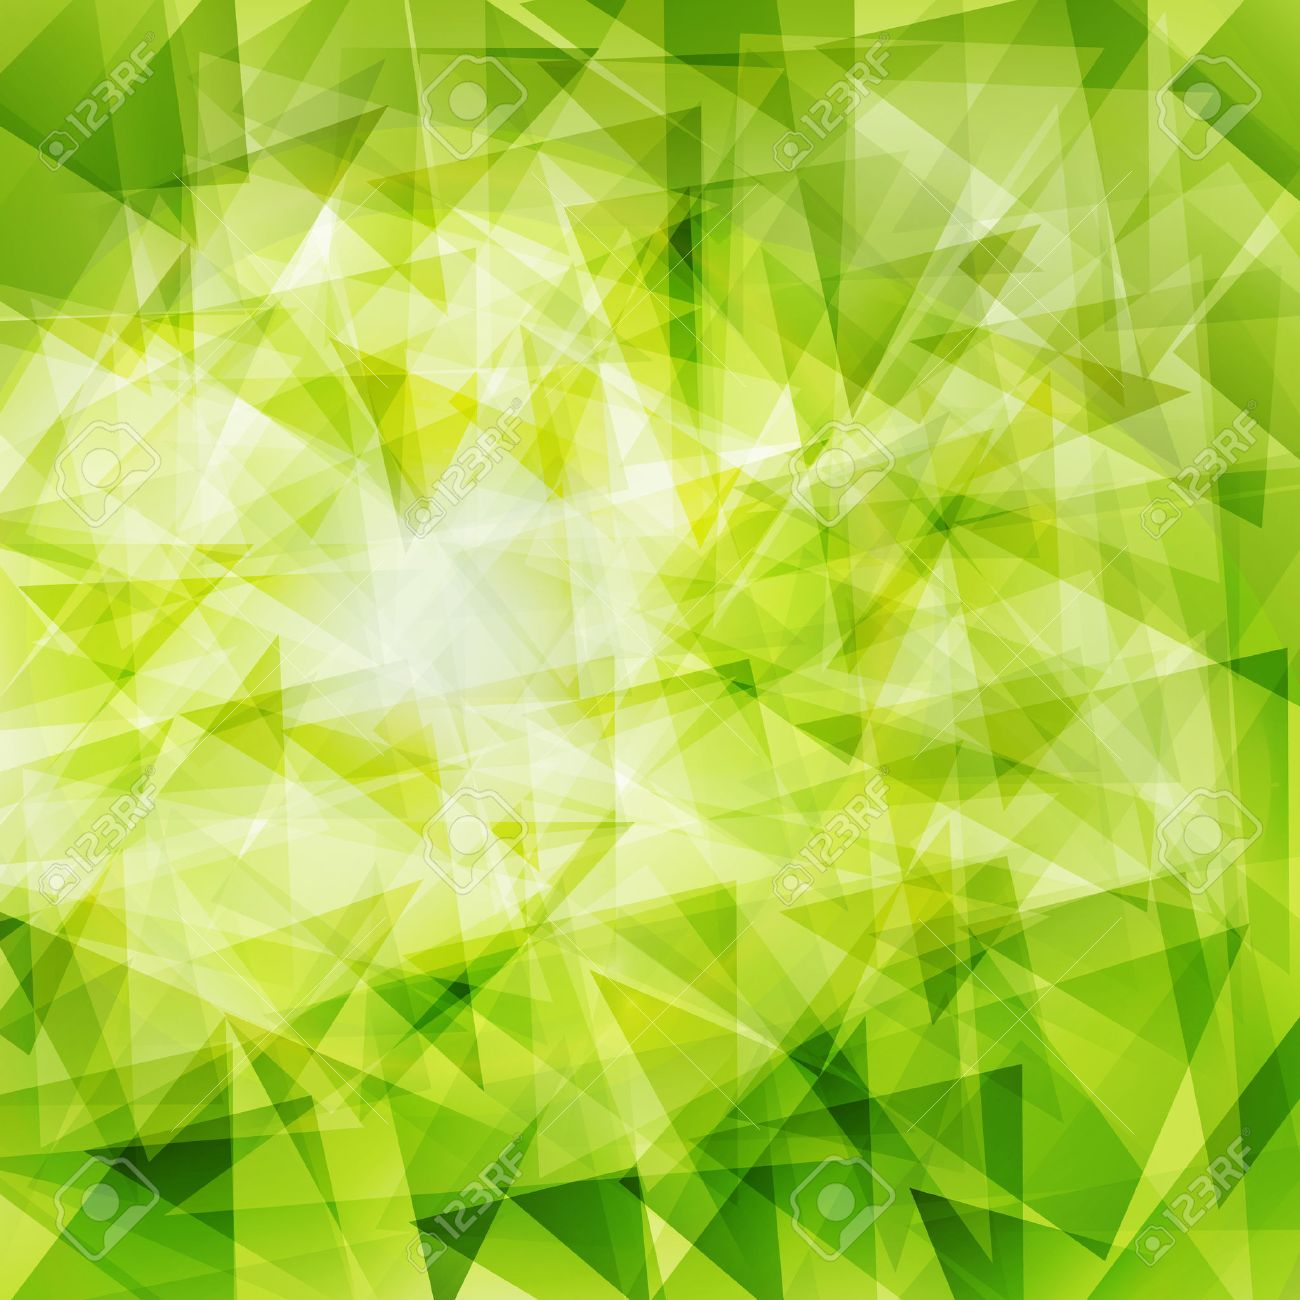 Green abstract geometrical background - 23119330